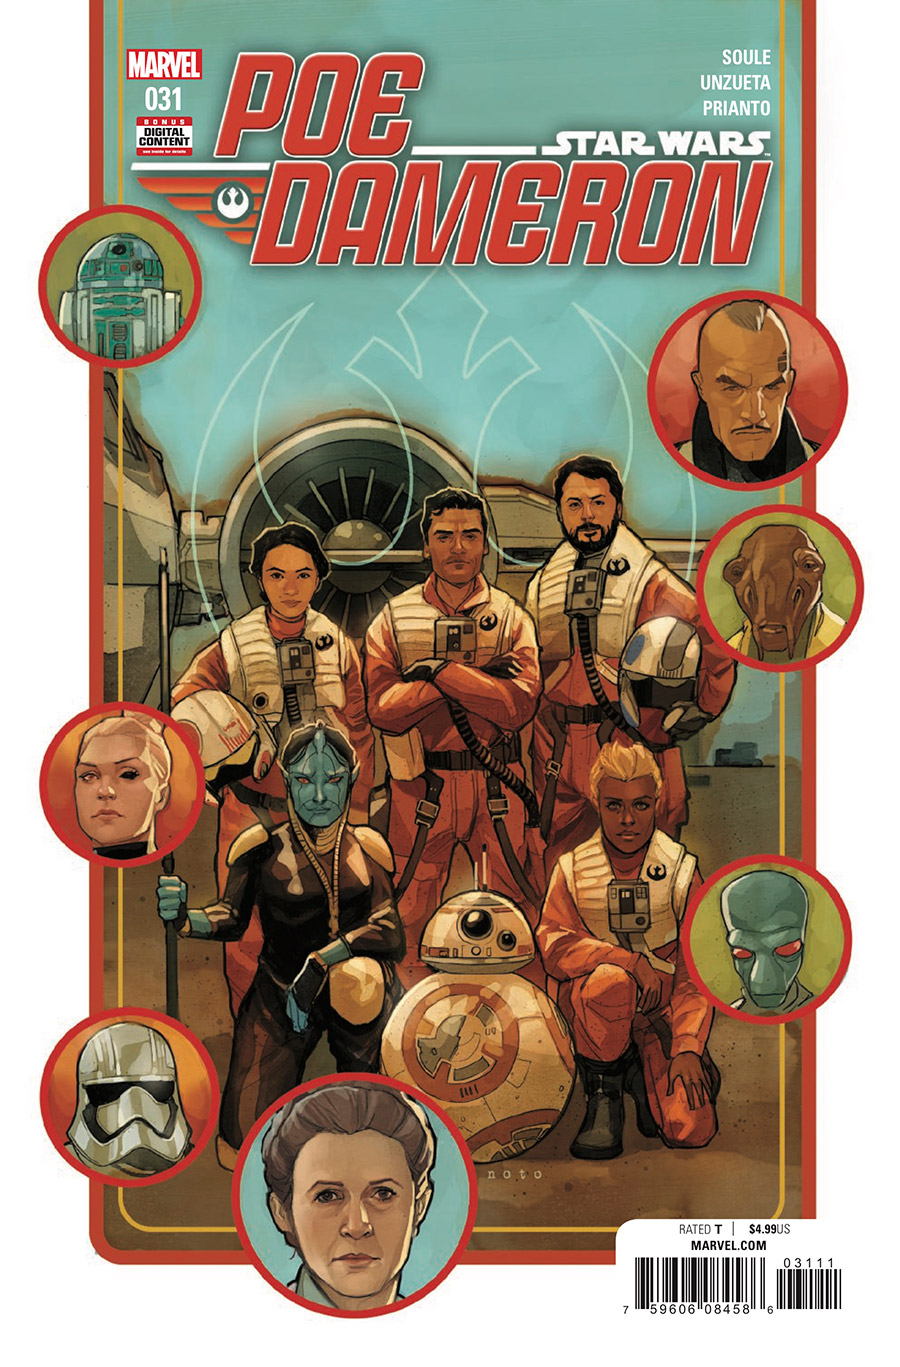 The cover of Poe Dameron #31.